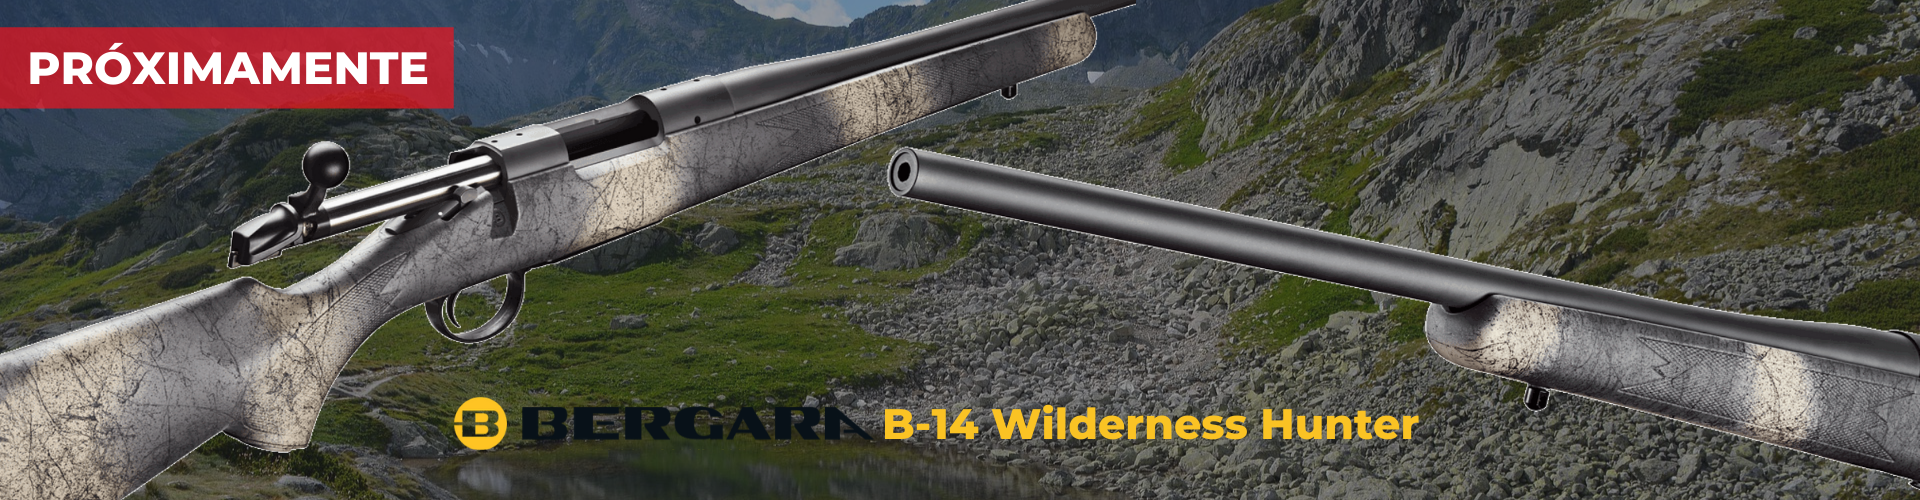 Rifle Bergara B-14 Wilderness Hunter